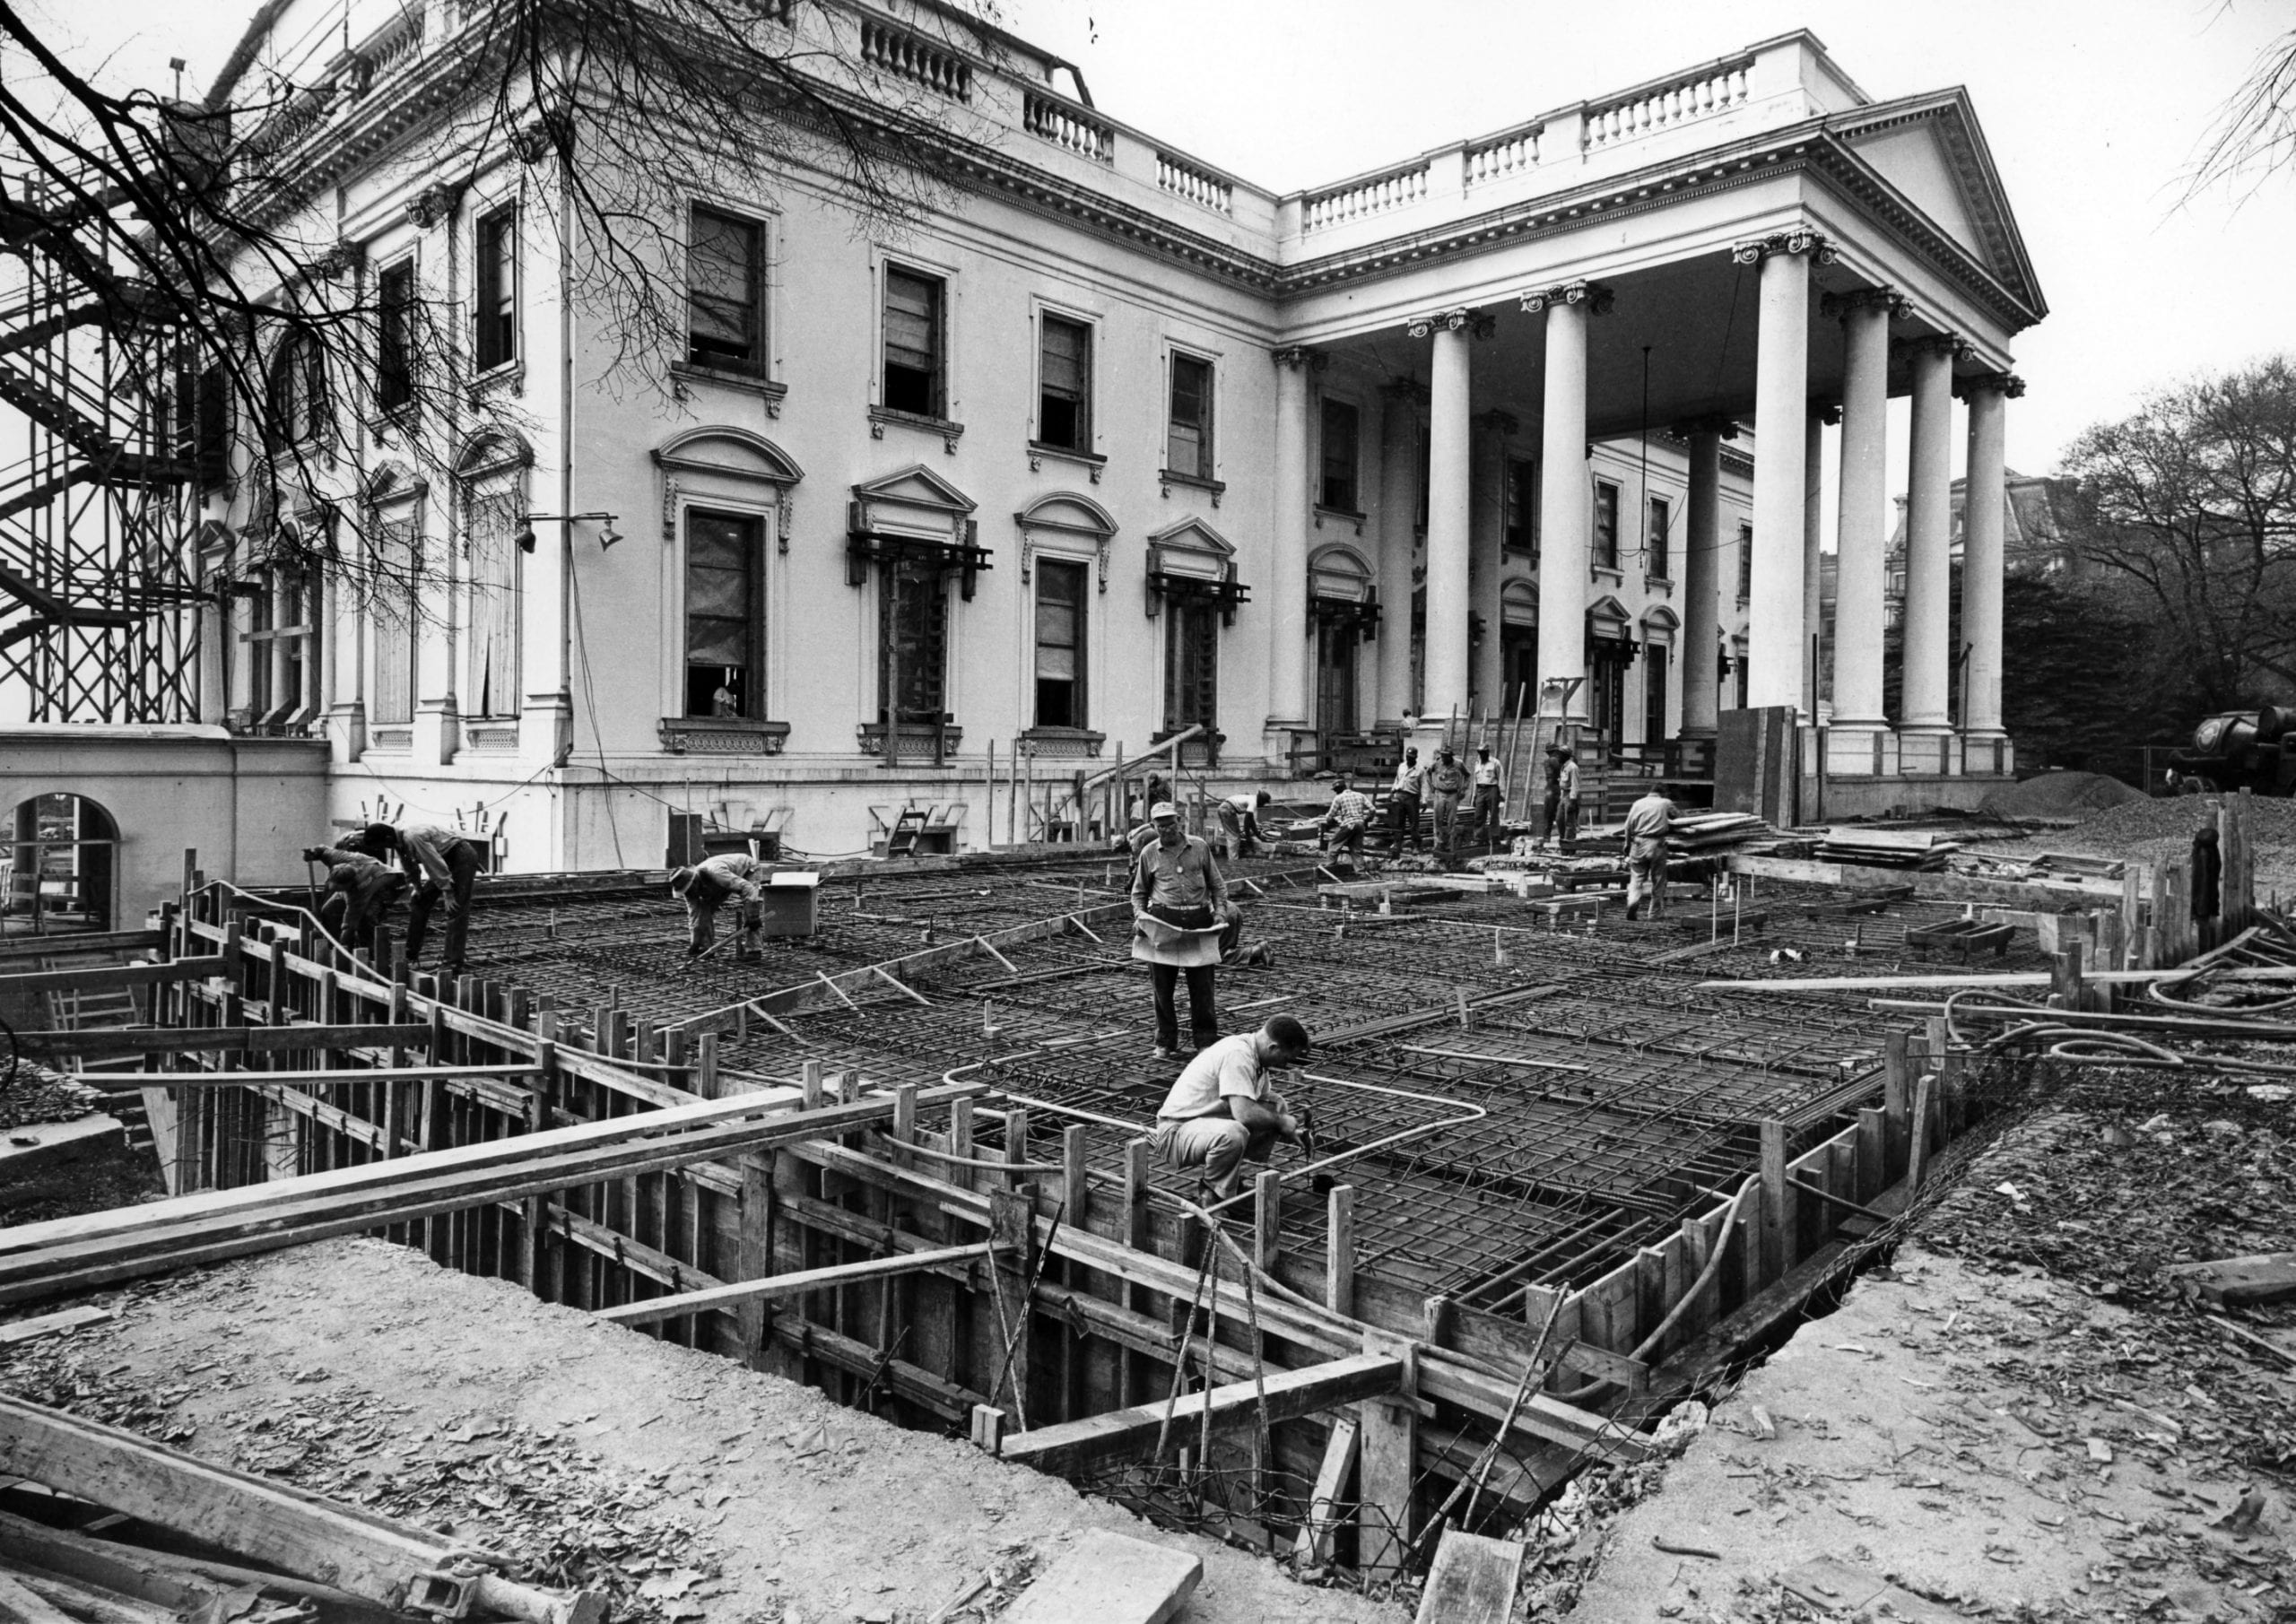 View of the Northeast Corner of the White House during the Renovation - November 6th, 1950